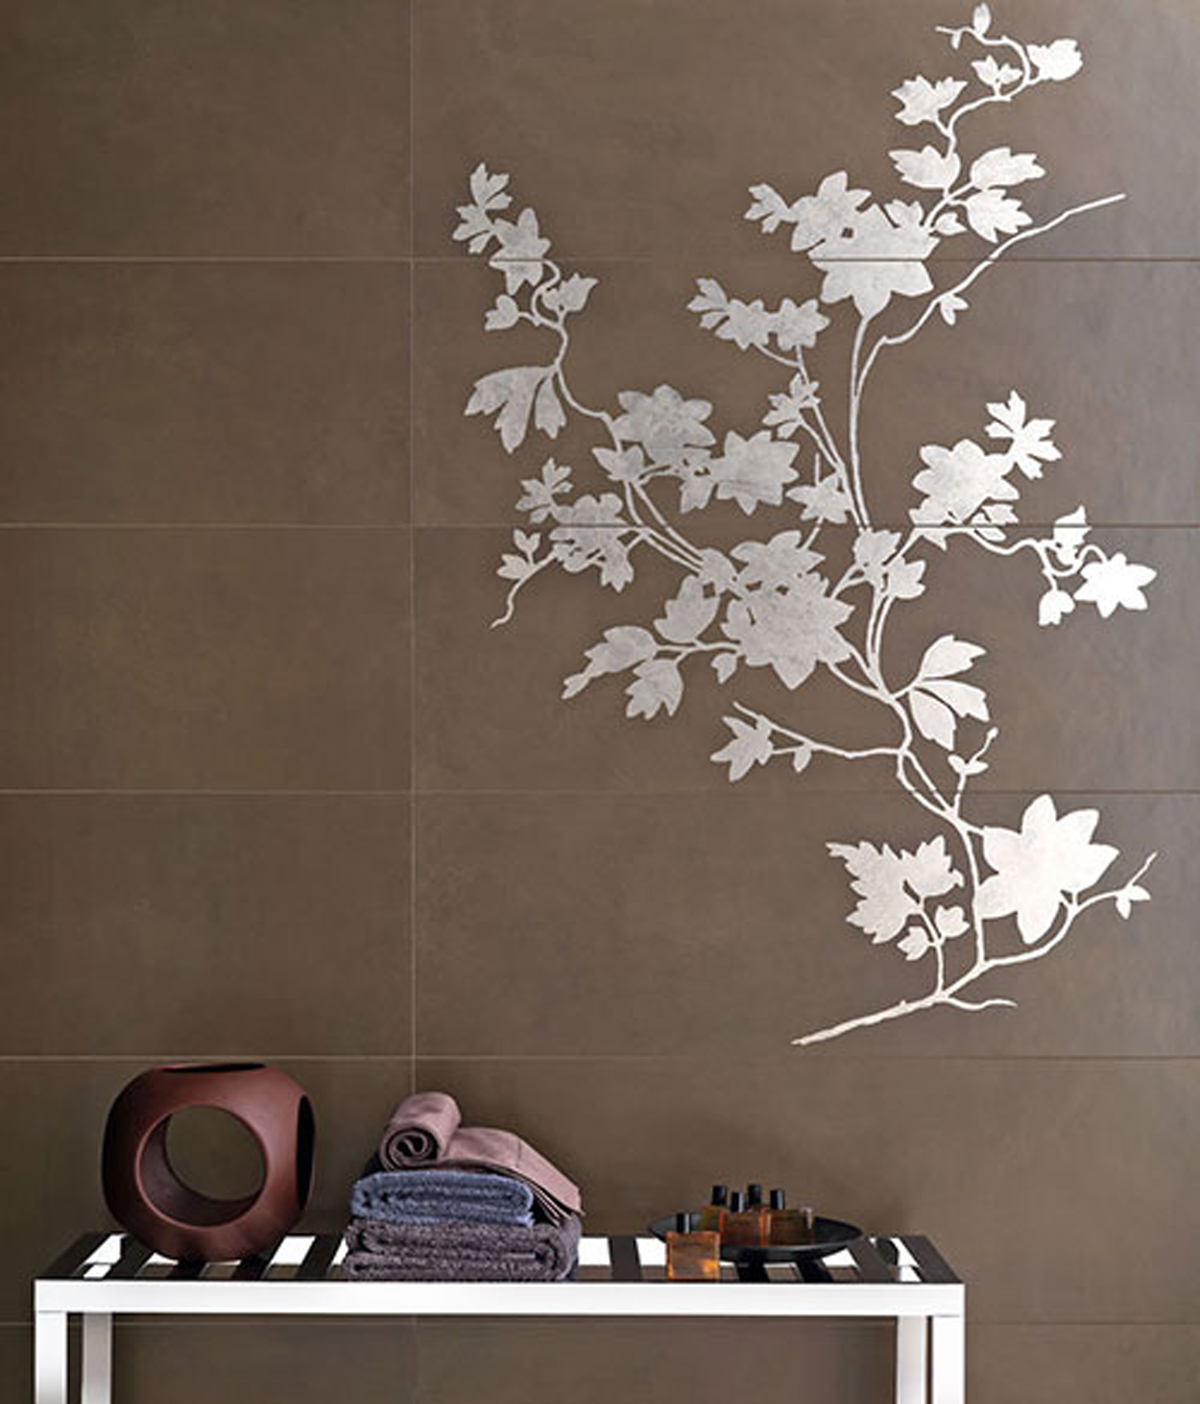 Floral tile wallpaper ideas for Wallpaper design ideas